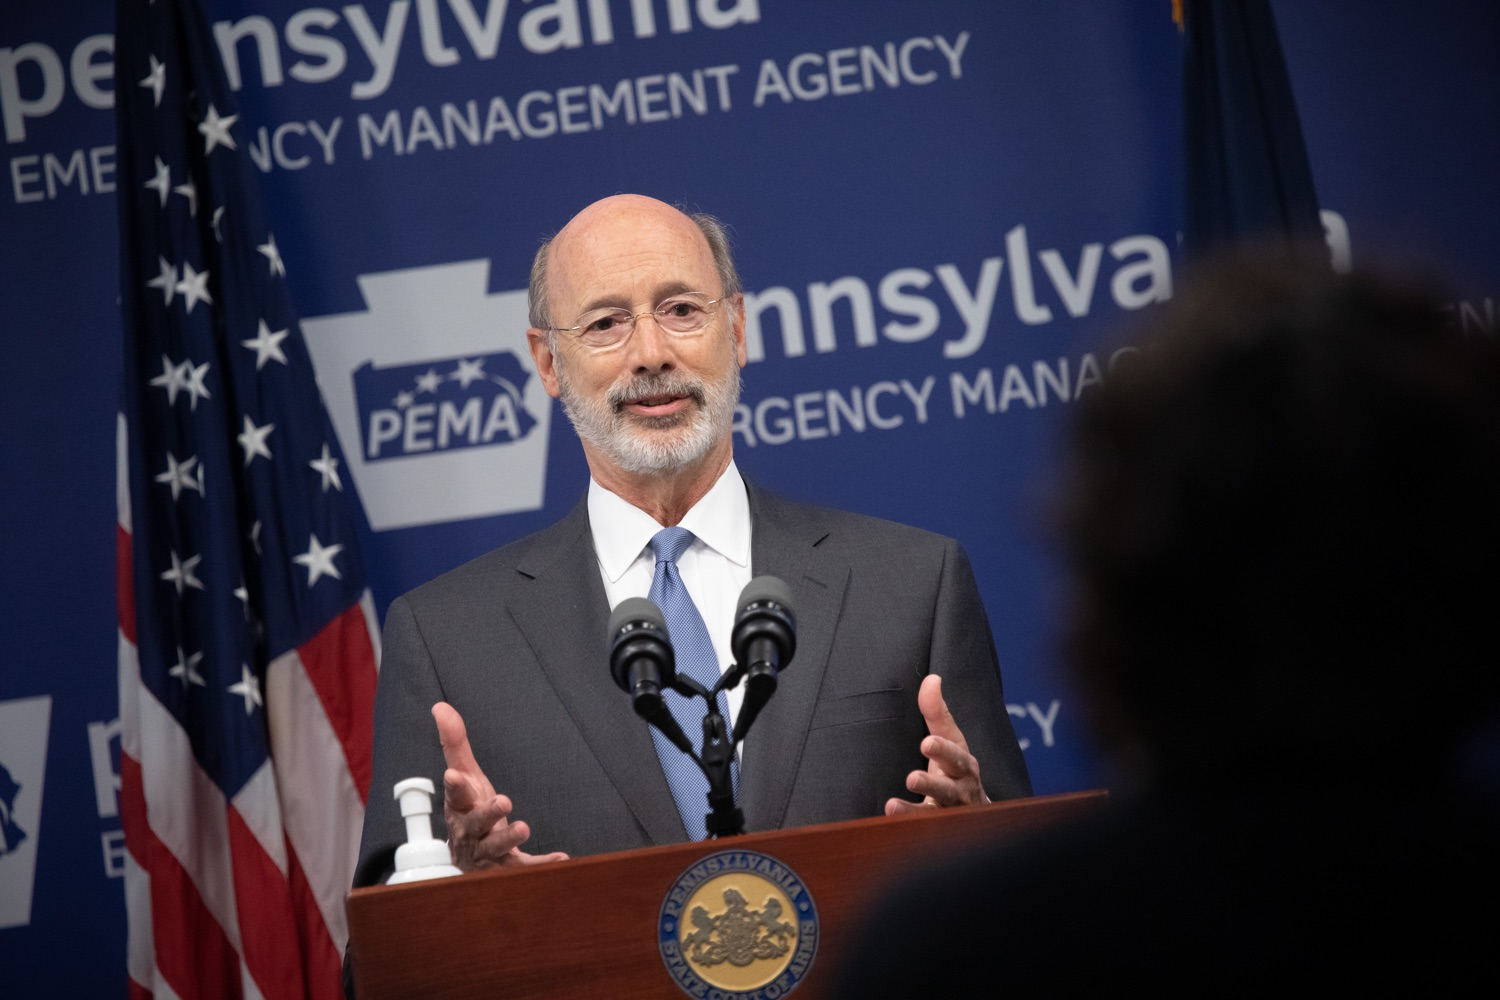 "<a href=""https://filesource.wostreaming.net/commonwealthofpa/photo/18088_gov_covid_update_dz_0011.jpg"" target=""_blank"">⇣ Download Photo<br></a>Governor Tom Wolf answers questions from the press. Governor Tom Wolf announced that people with intellectual disabilities and autism and the providers of support services for these vulnerable Pennsylvanians will receive $260 million in CARES Act funding to help continue to provide services during the COVID-19 pandemic.  Gov. Wolf was joined by Department of Human Services Secretary Teresa Miller, who outlined to details of funding allocations.  JUNE 15, 2020 - HARRISBURG, PA"